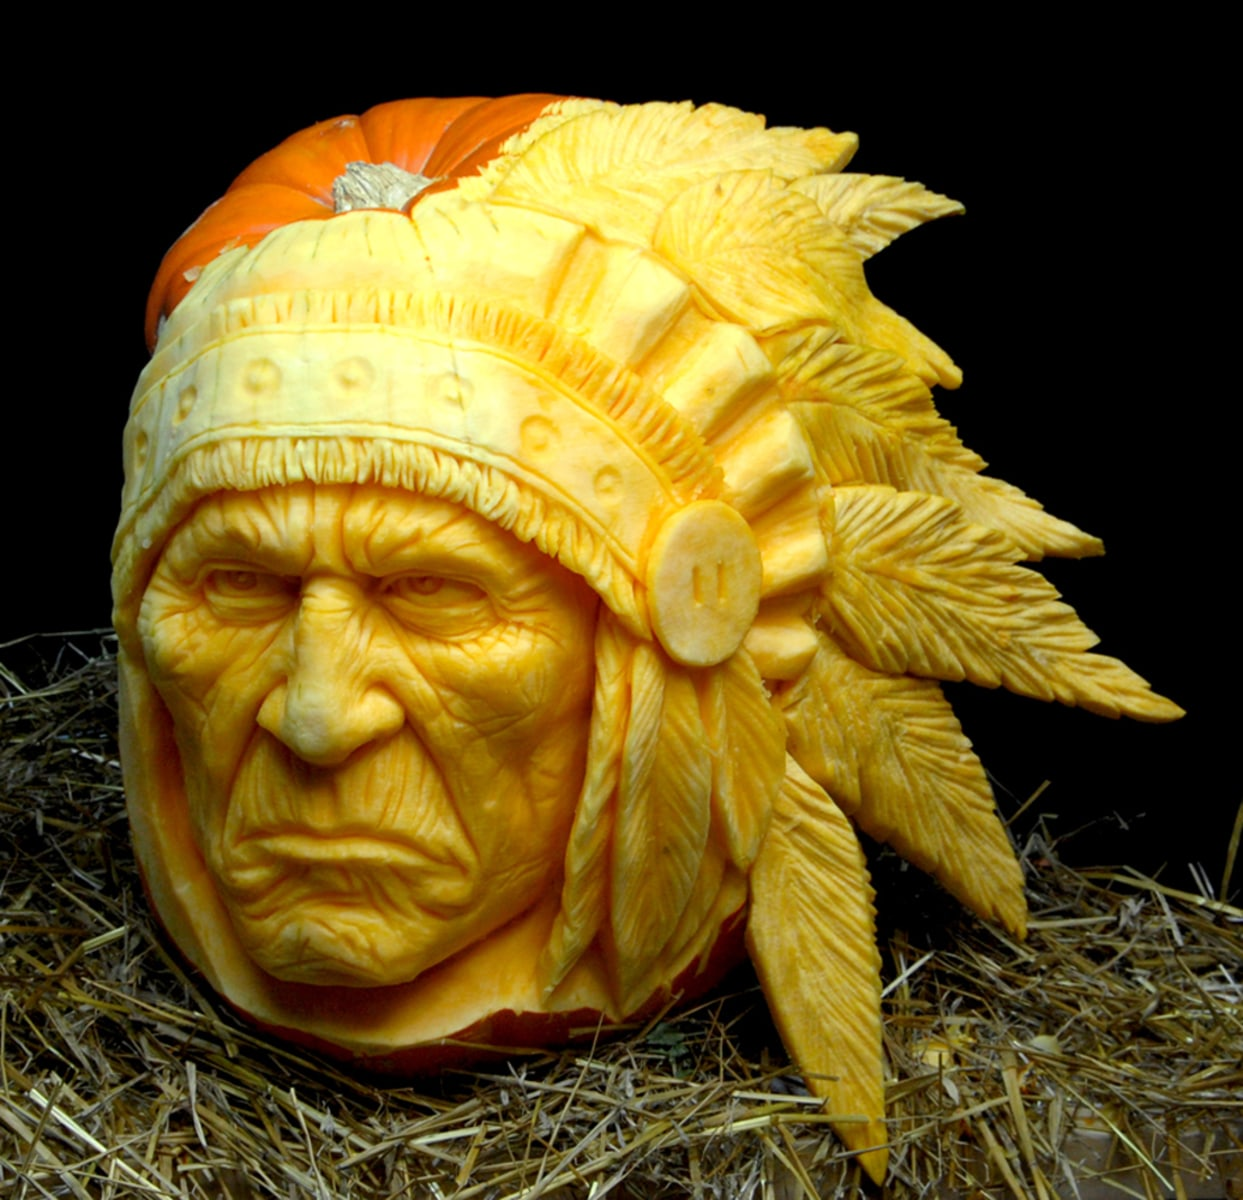 A cut above the rest: Look at these creative pumpkin carvings ...